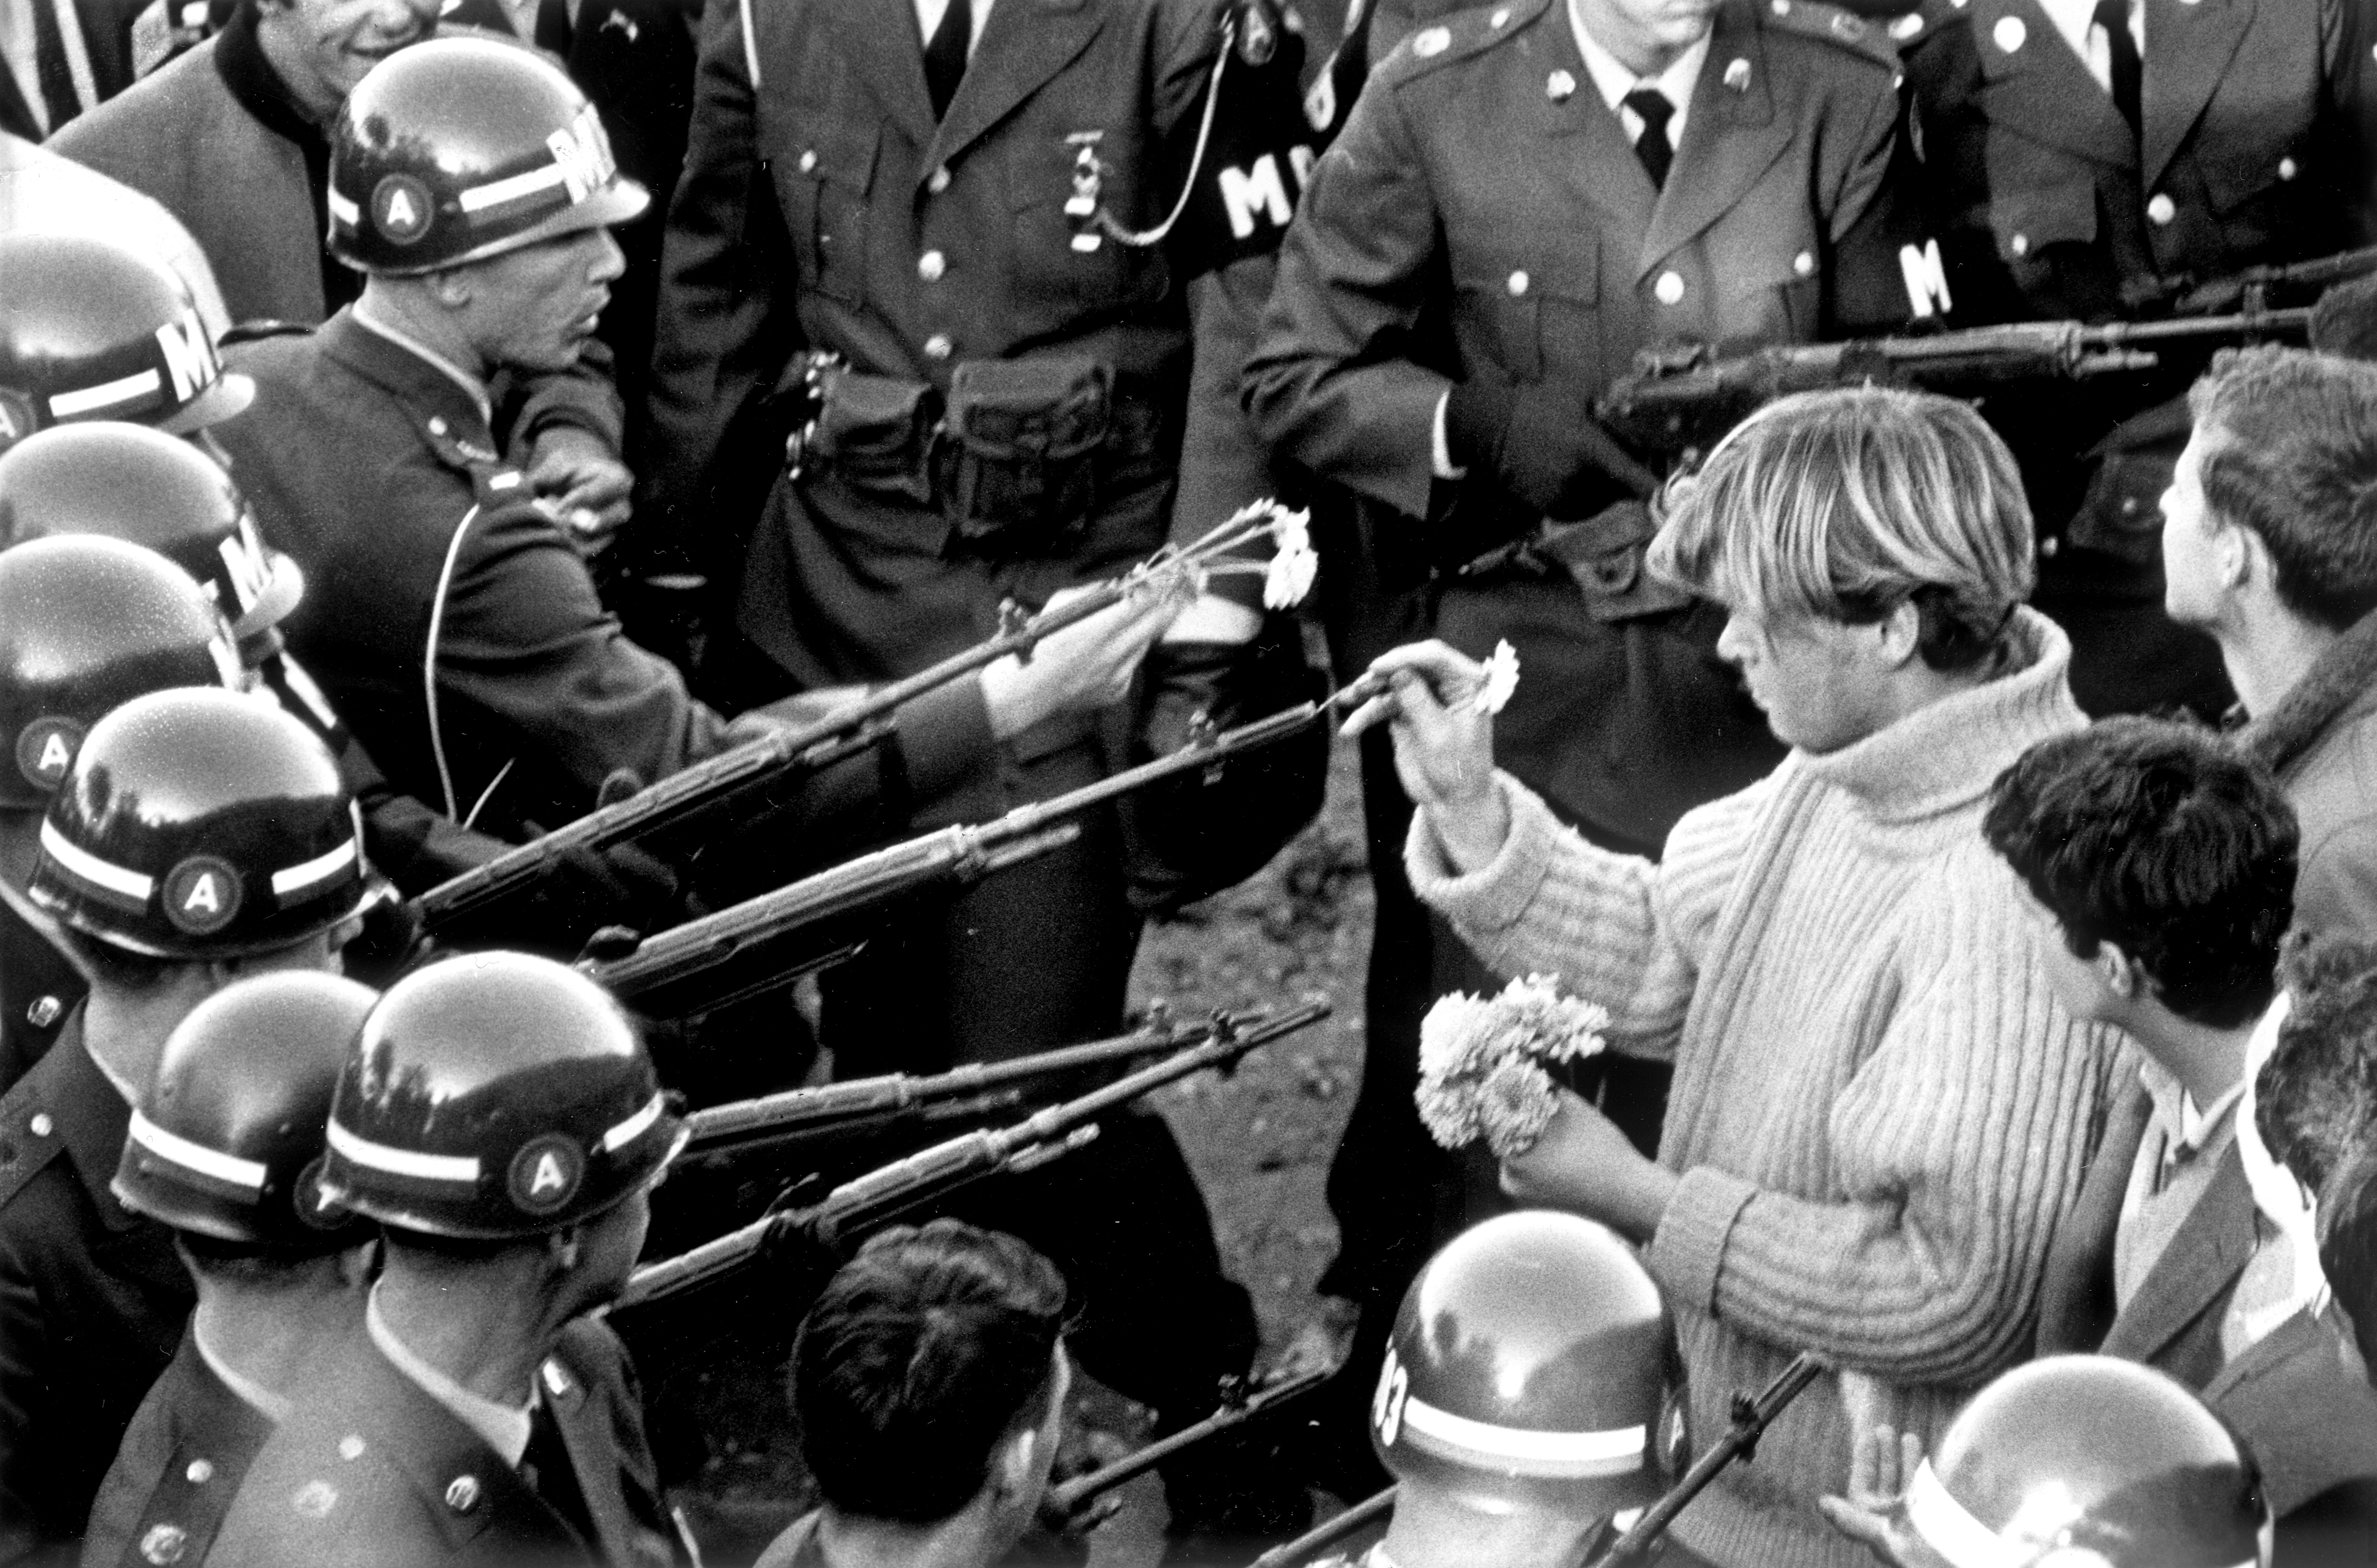 October 26 1967: Antiwar demonstrators, Pentagon Building. Getty Images